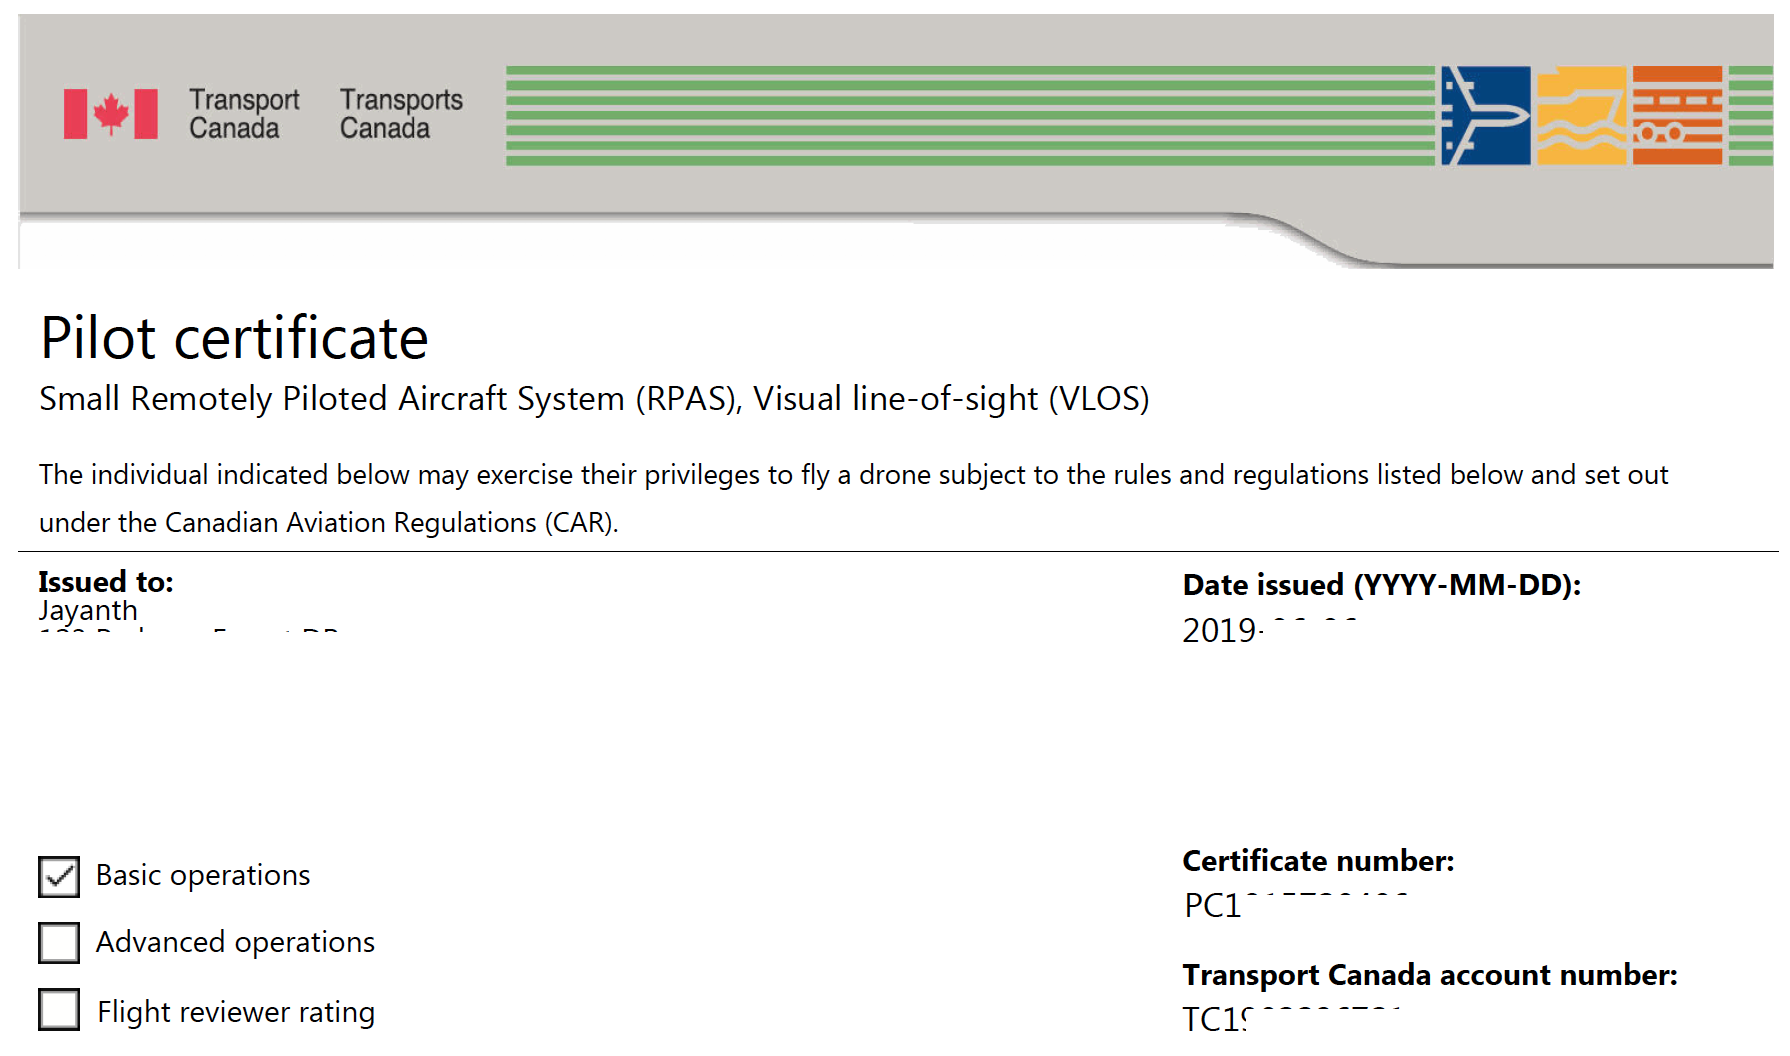 basic license required to fly a drone in Canada